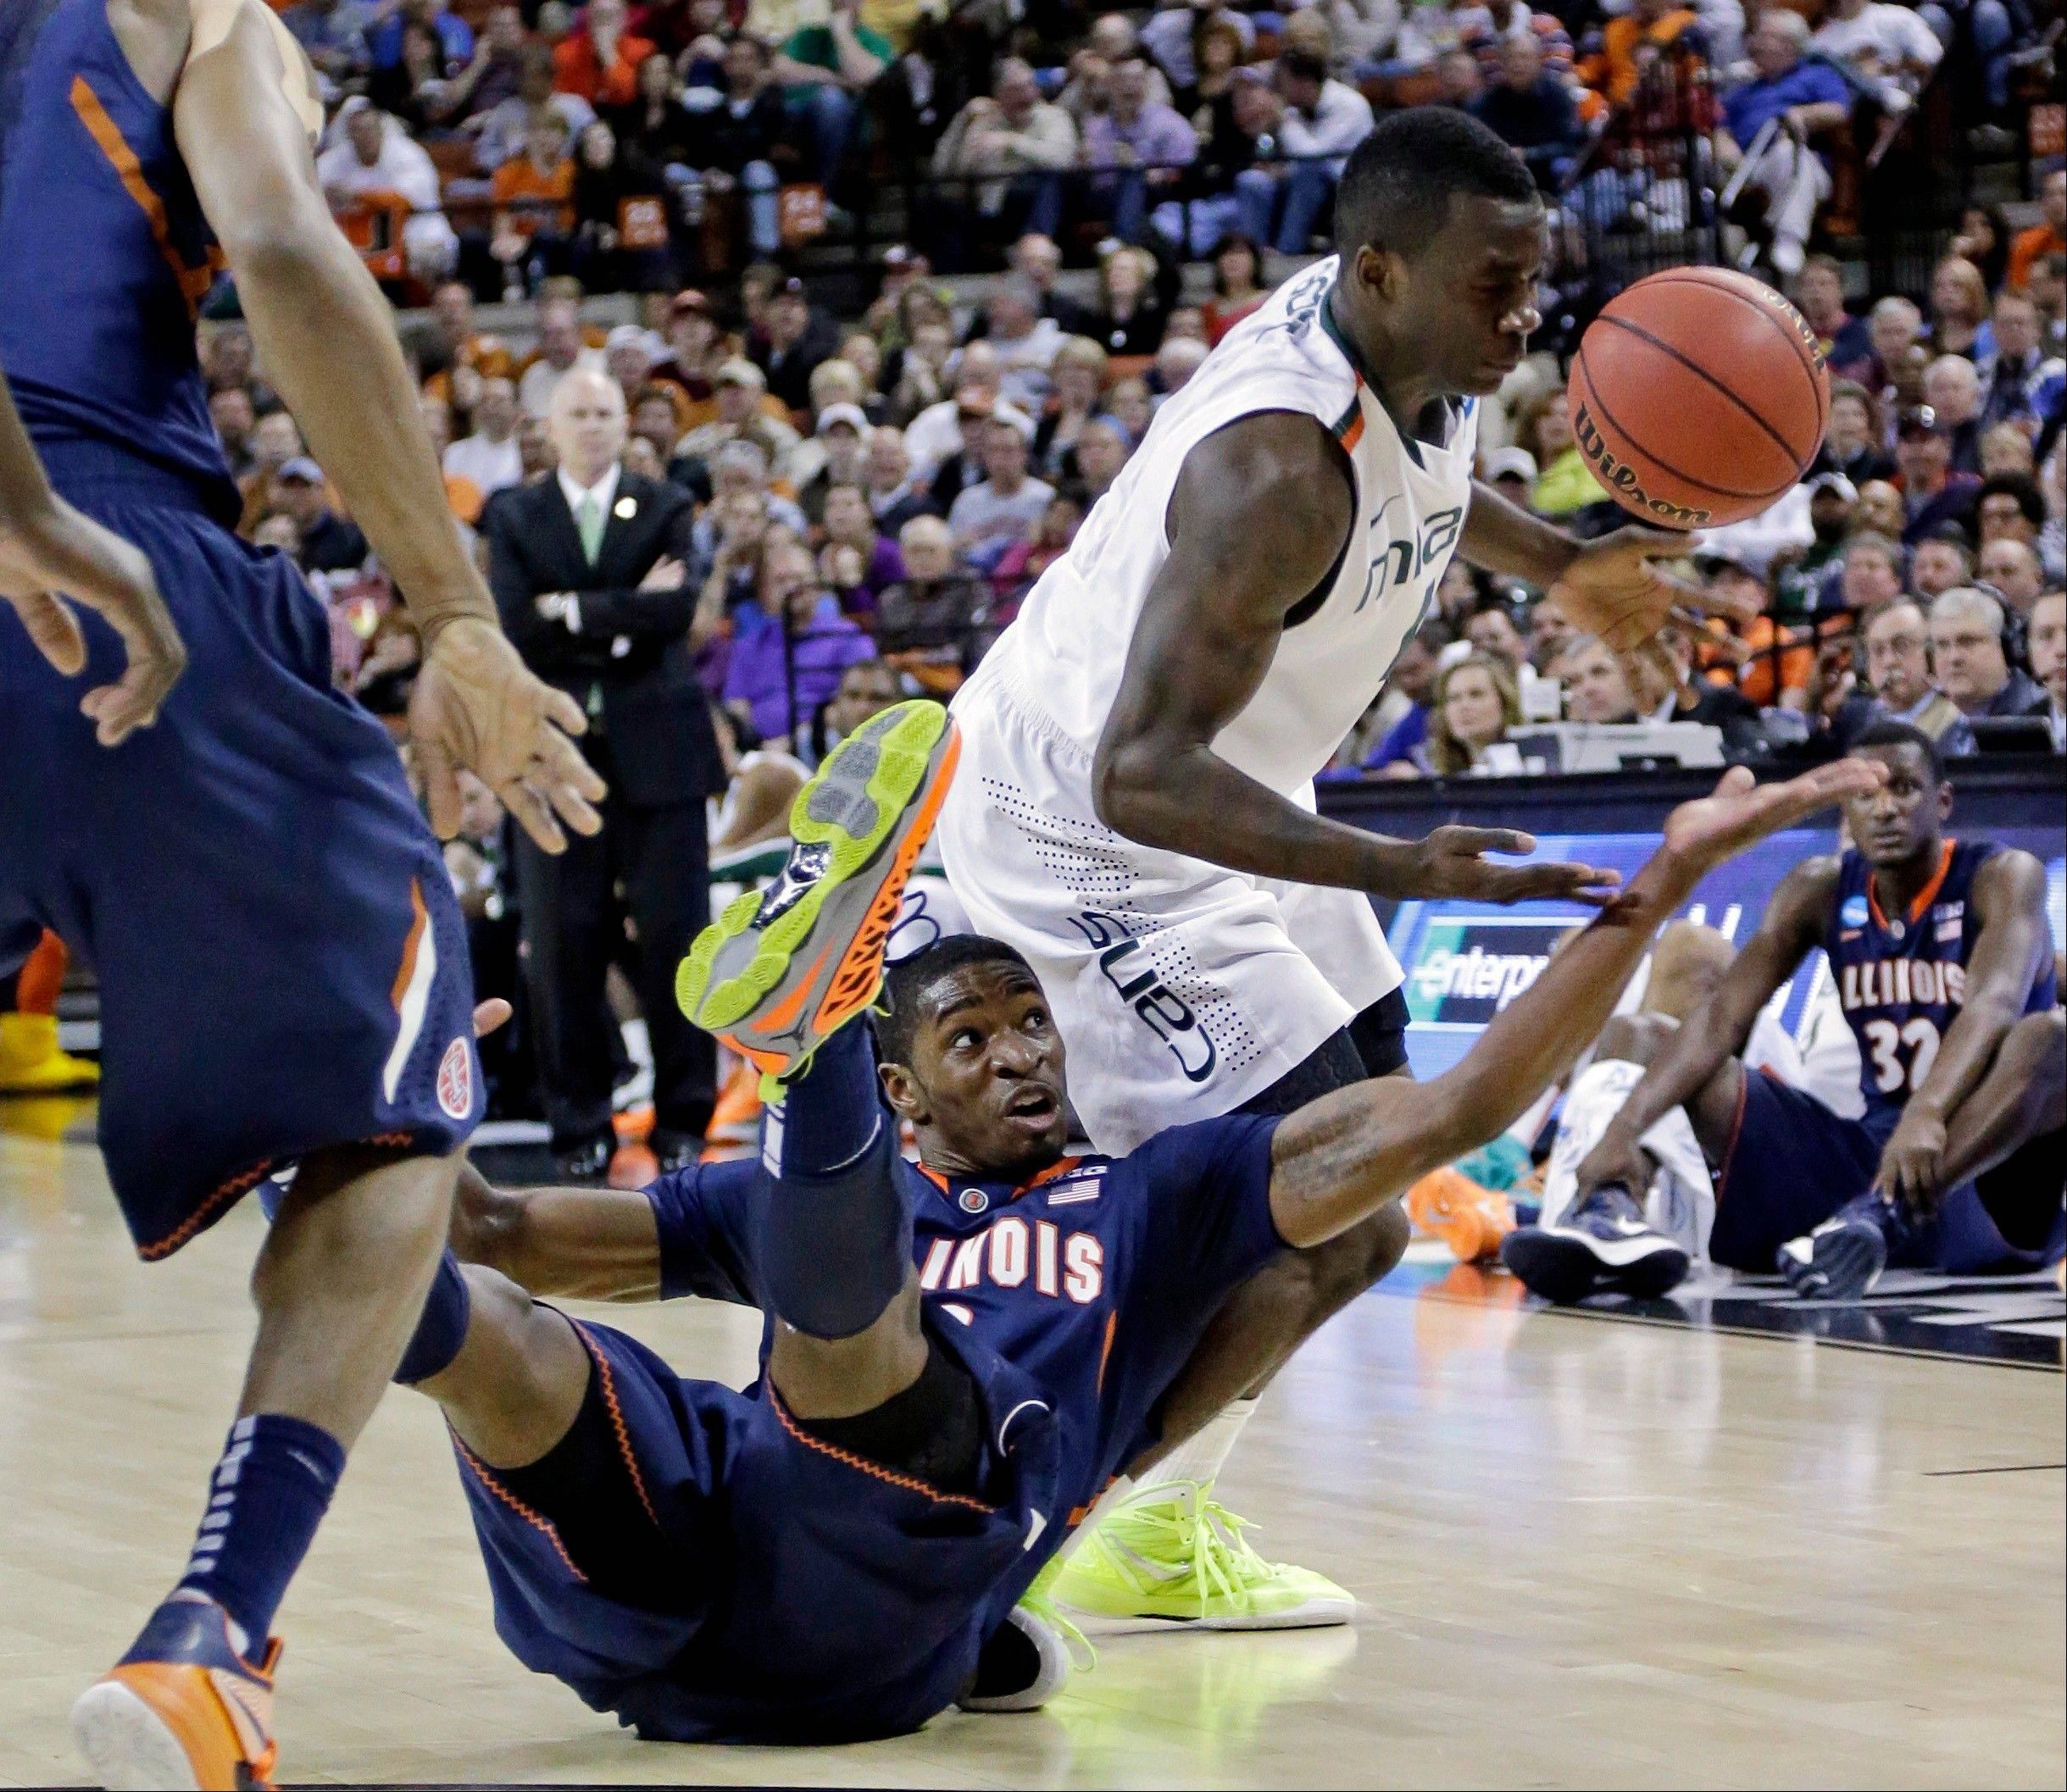 Illinois' Brandon Paul and Miami's Durand Scott battle for a loose ball during the first half of a third-round game of the NCAA college basketball tournament Sunday, March 24, 2013, in Austin, Texas.